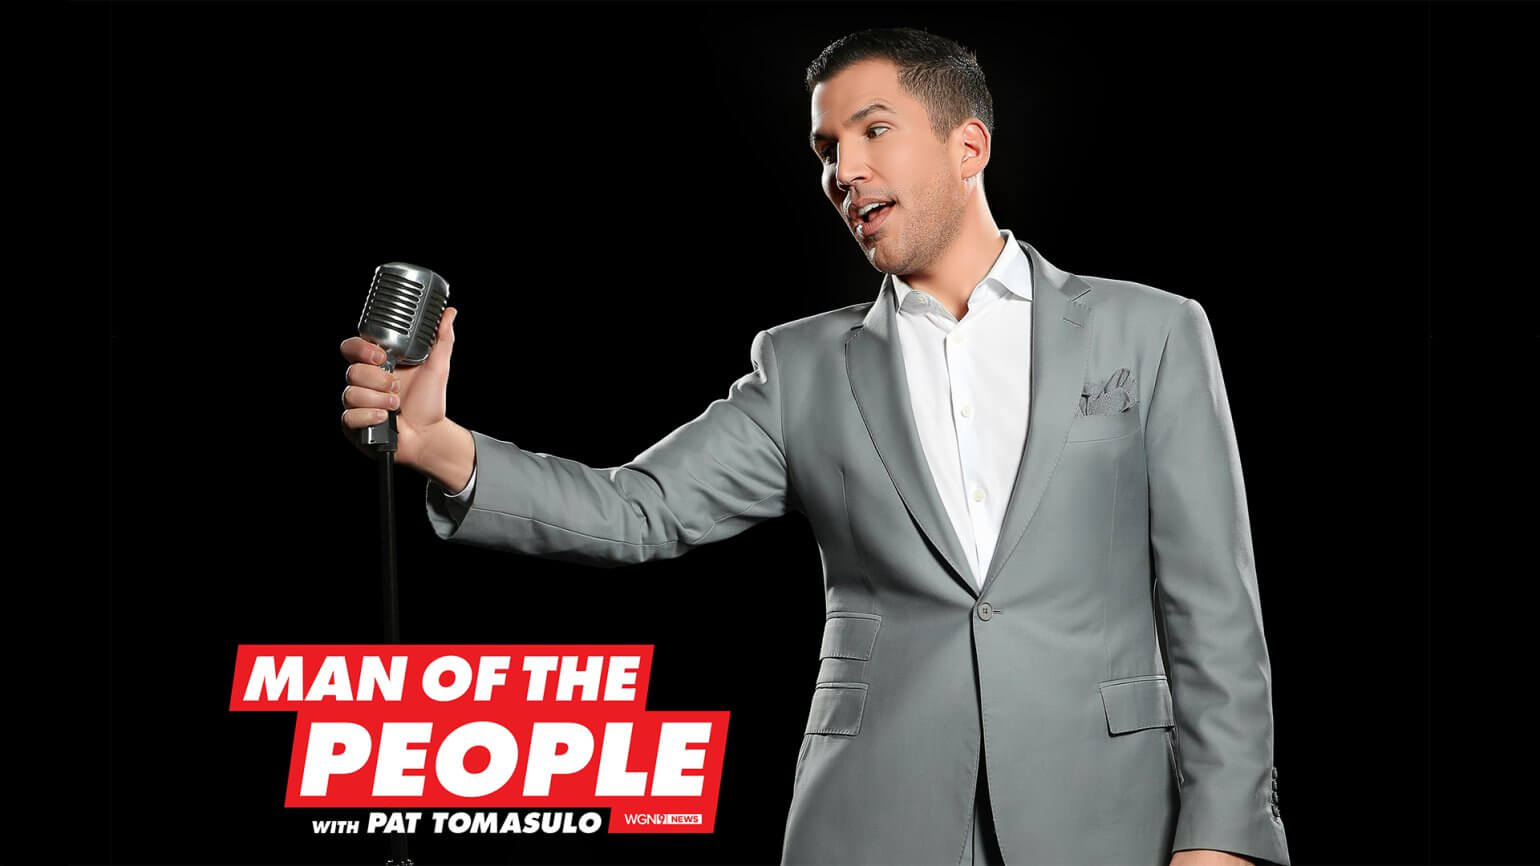 Tomasulo's Man of the People offers refreshing chuckles in mad, mad, mad, mad world.